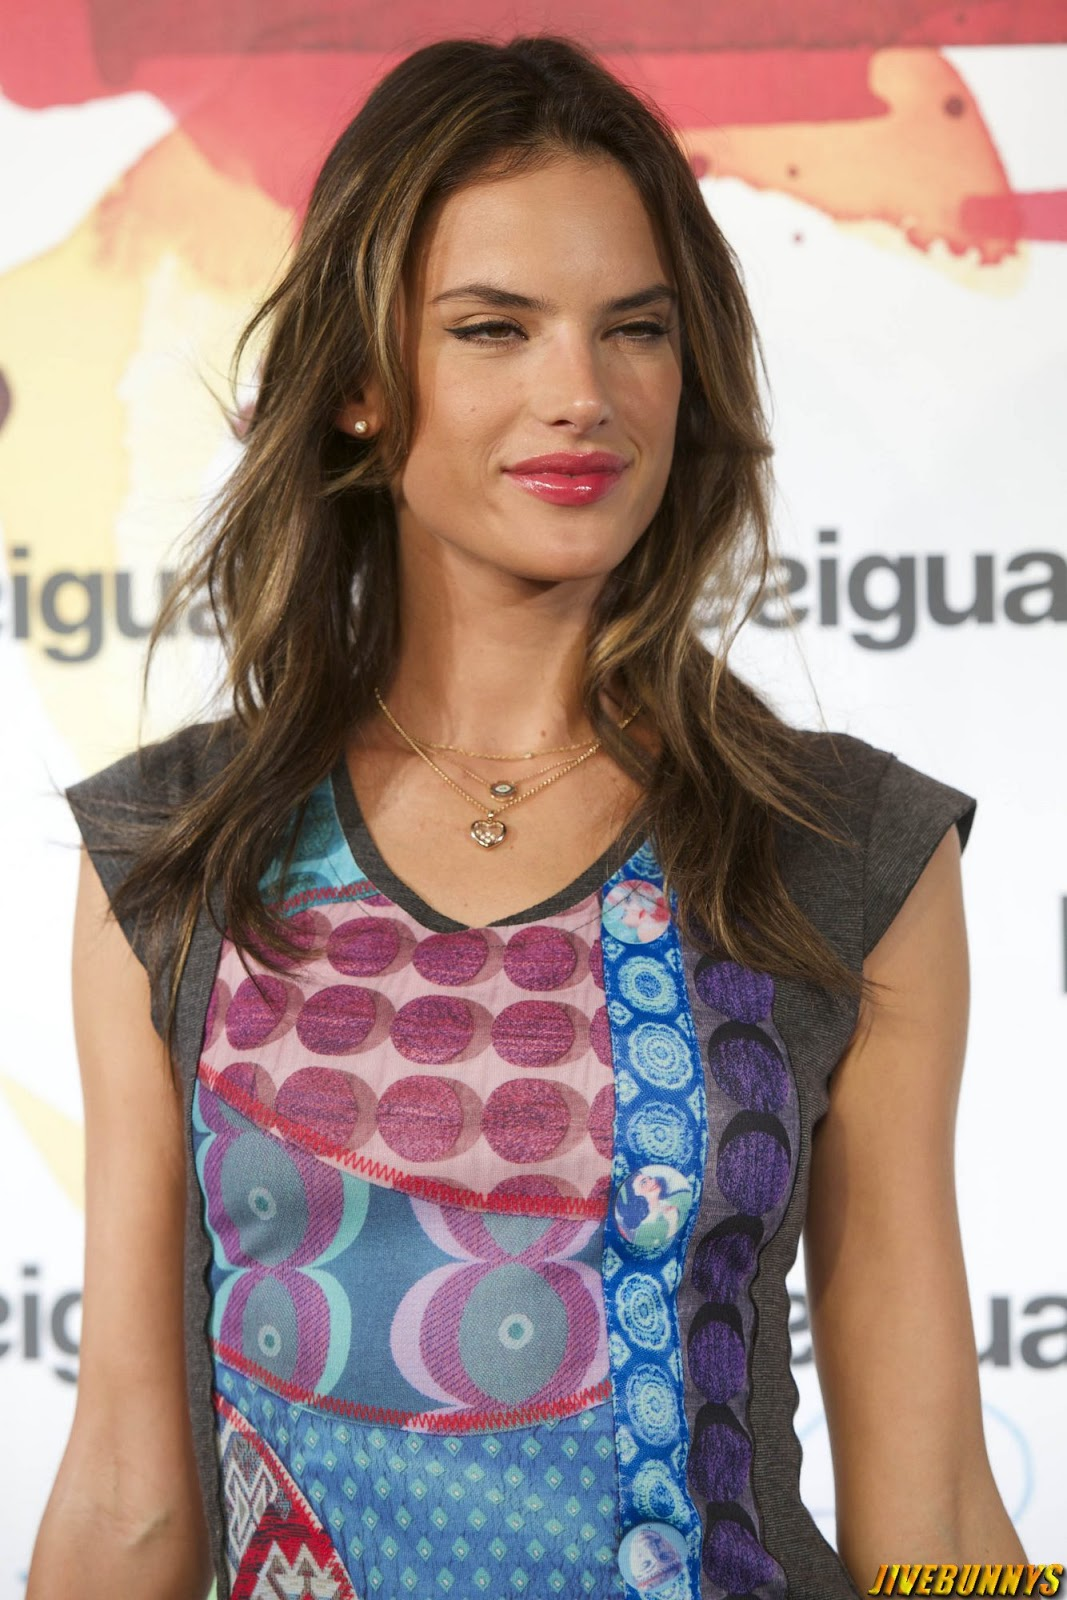 Alessandra Ambrosio - Presents 'La vida es chula' at Desigual in Madrid - 11/09/2014